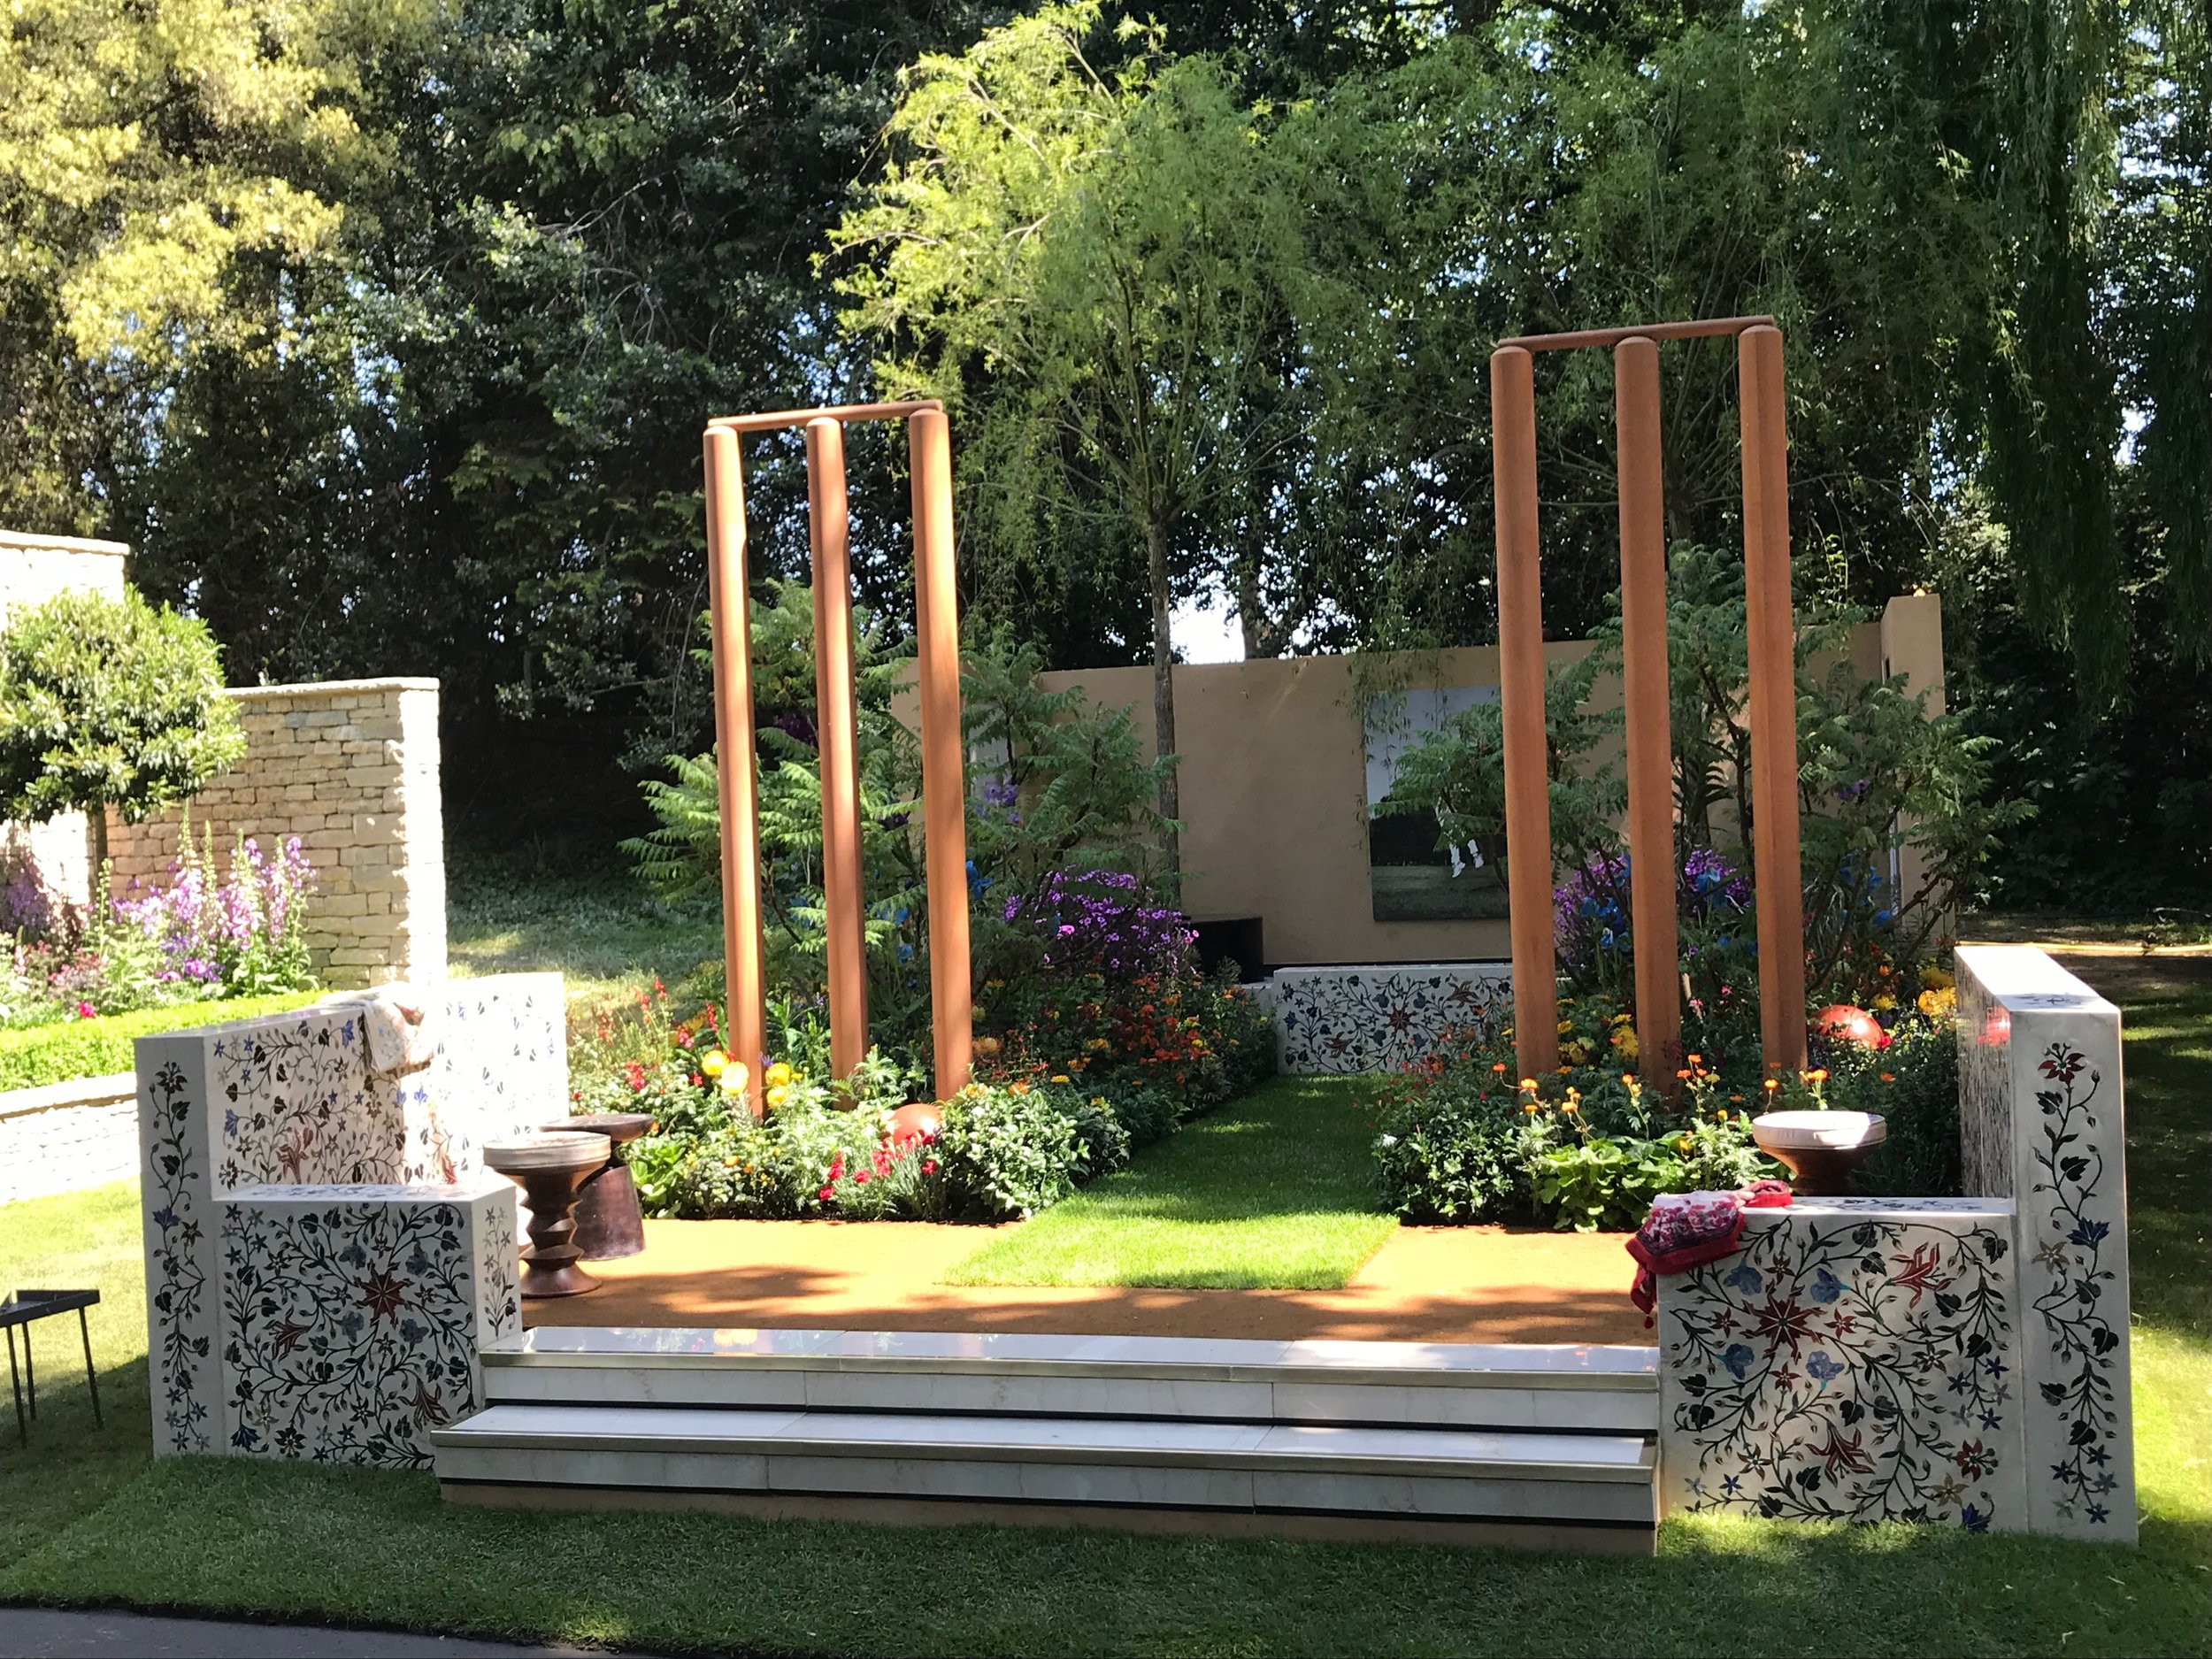 British Council Garden Chelsea 2018 Gillian Goodson Designs_1.JPG